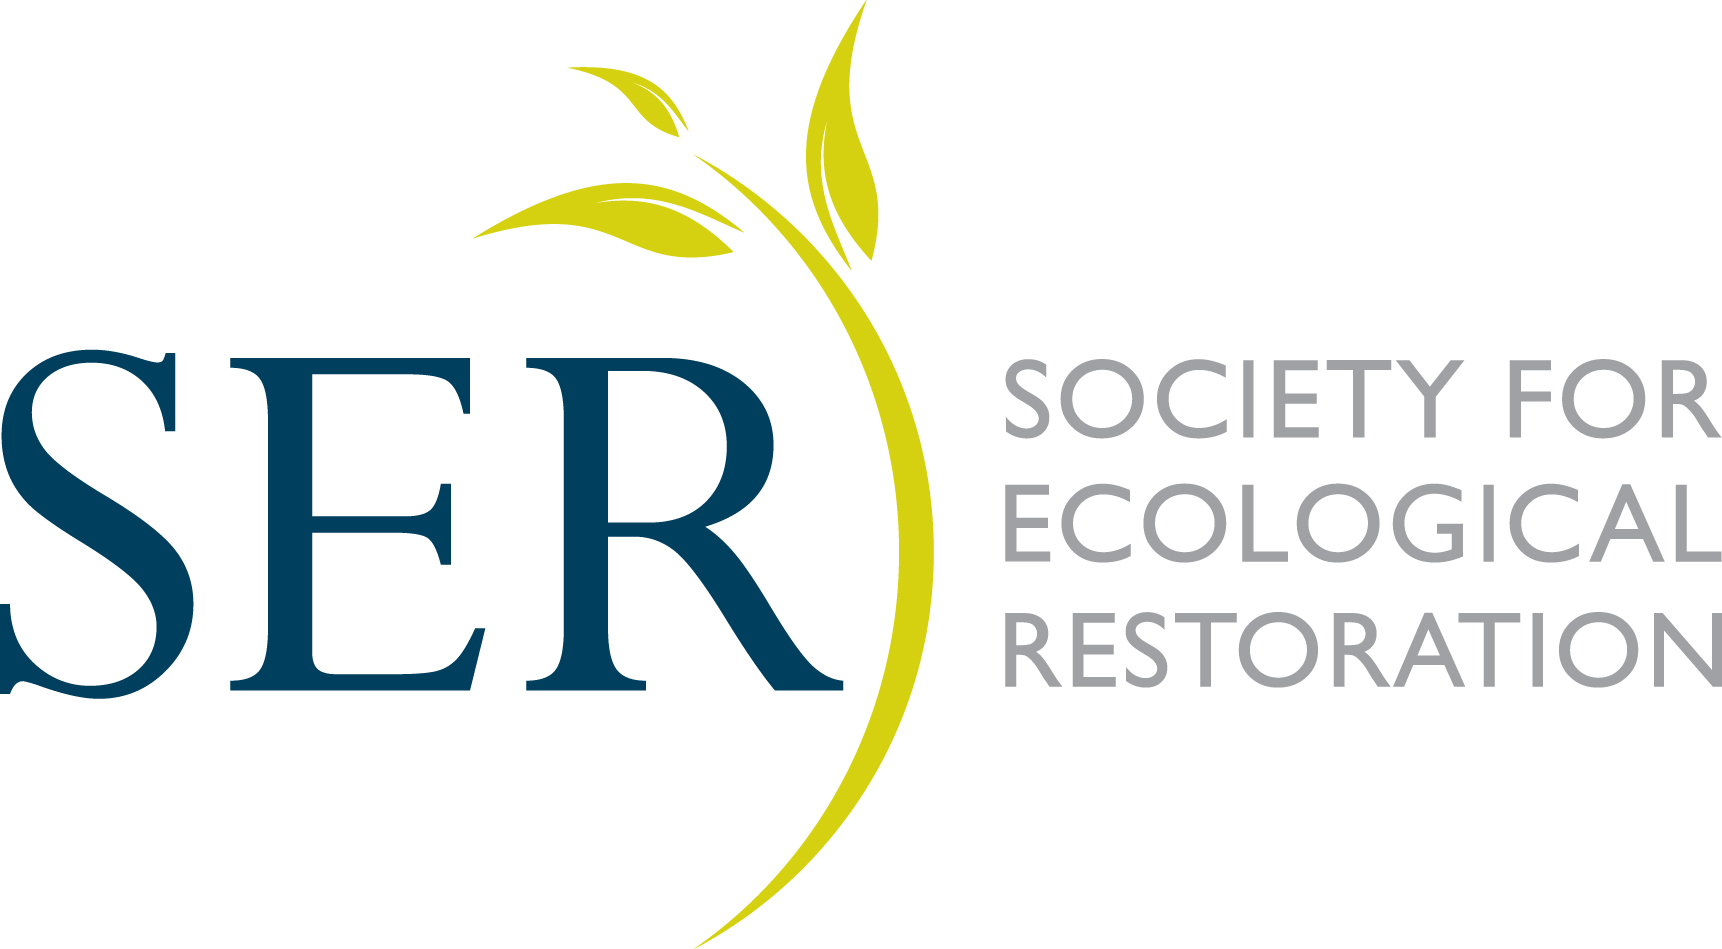 Society For Ecological Restoration logo on white background, linking to website